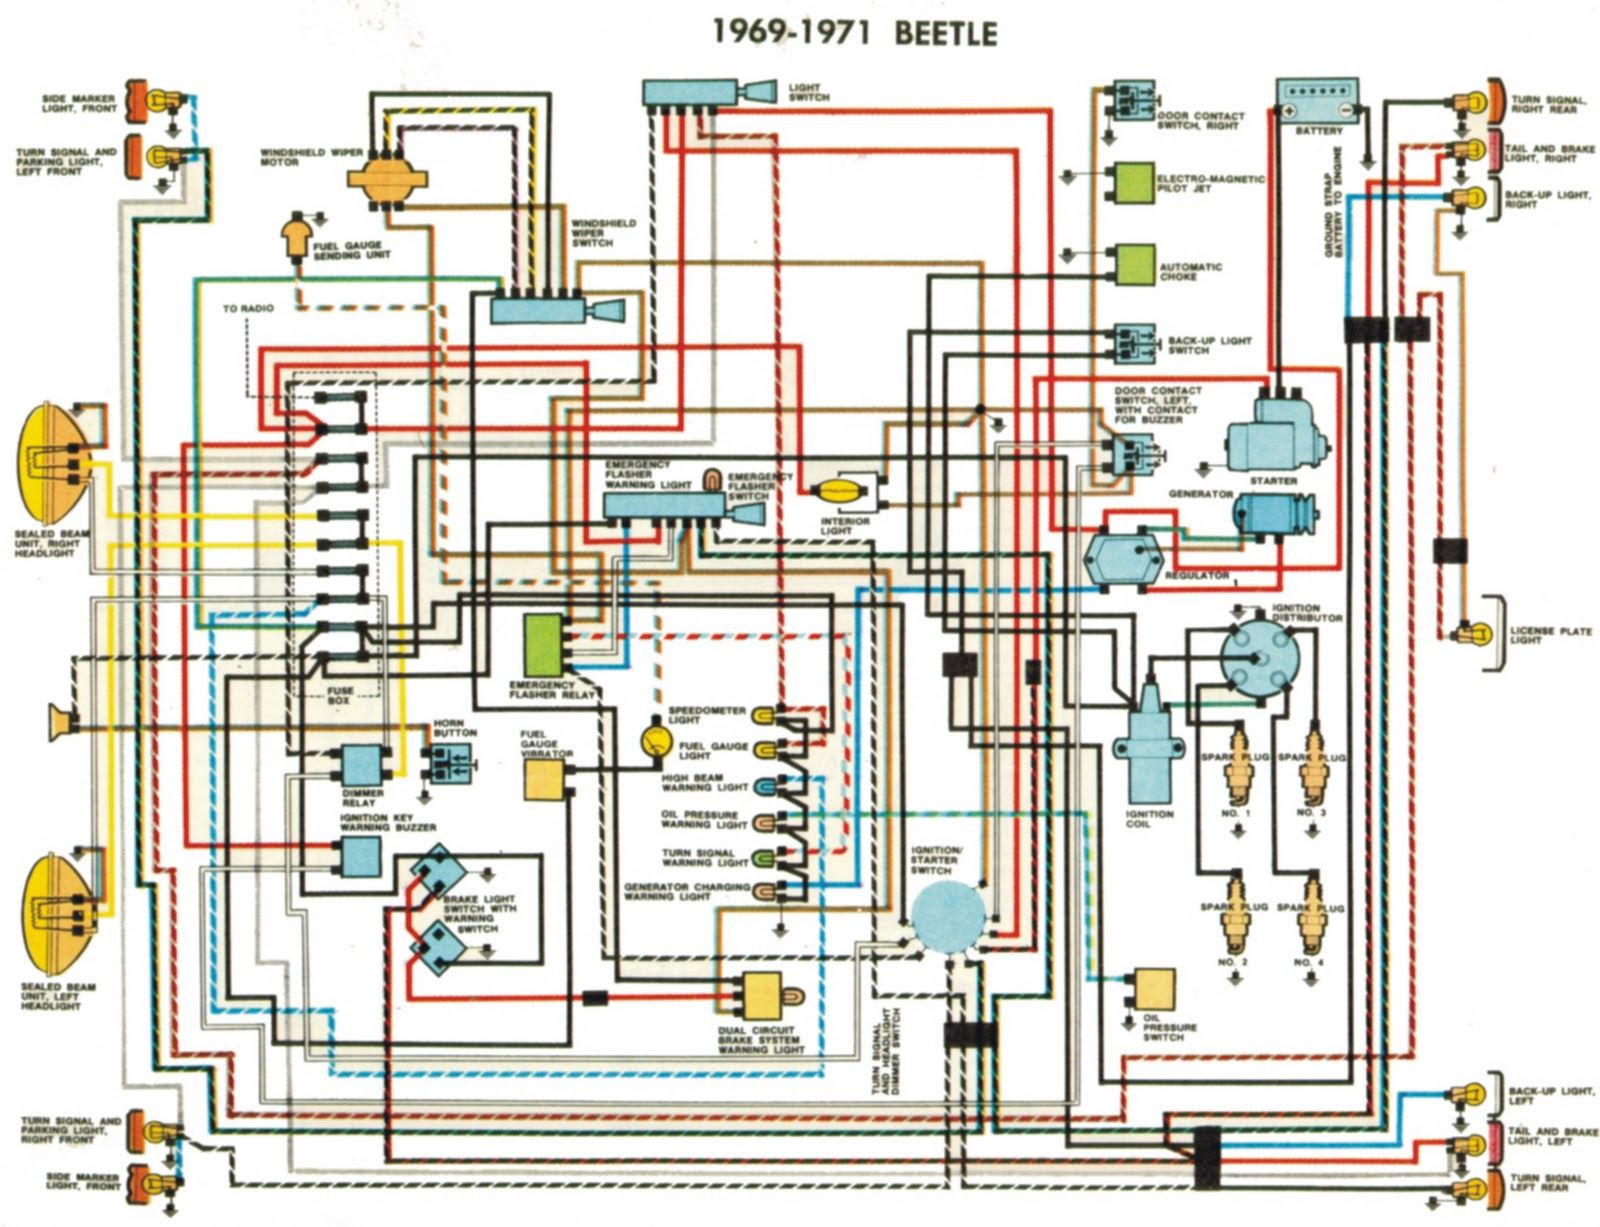 Beetle Wiring Harness Diagram on 71 beetle seats, 71 beetle wheels, 71 beetle fuse diagram, 71 beetle bumpers, vw beetle diagram, 71 beetle exhaust, 71 beetle engine, 71 beetle parts, super beetle engine diagram, 71 beetle carb diagram, 71 beetle rear suspension, 1971 vw engine diagram, 71 beetle oil filter,